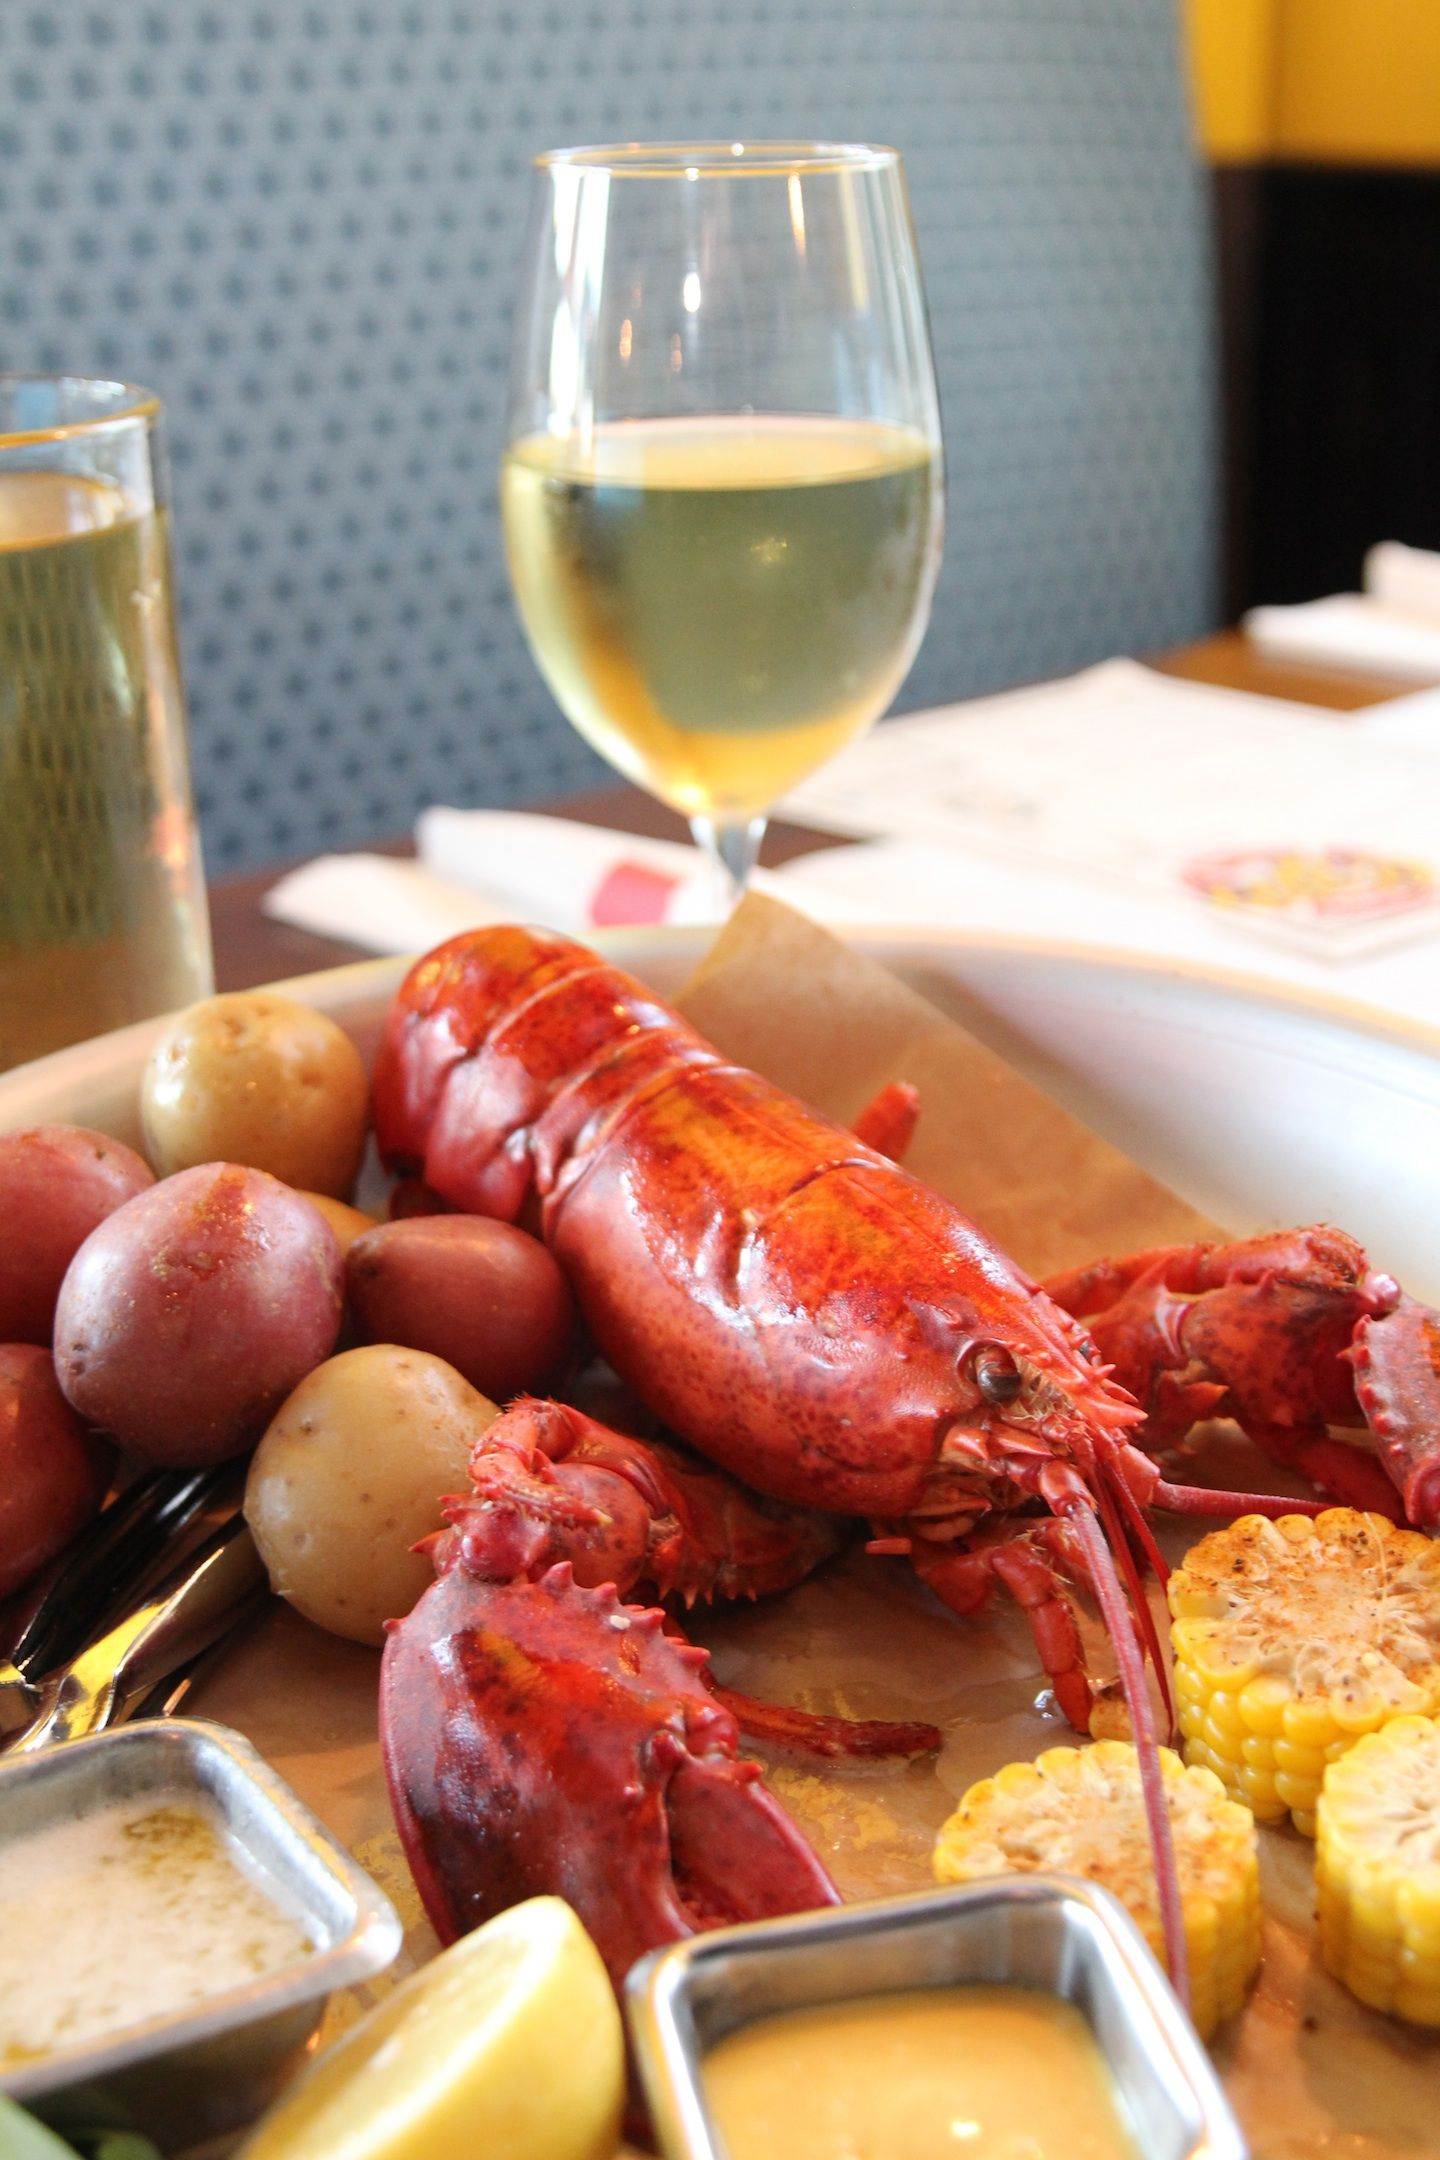 We Often Have Lobster Specials At Coldbrews Oyster Bar Visit Online For Specials Http Www Coldbrewsgrill Com Entertainment Php Coldbrewsgri Food Eat Yummy